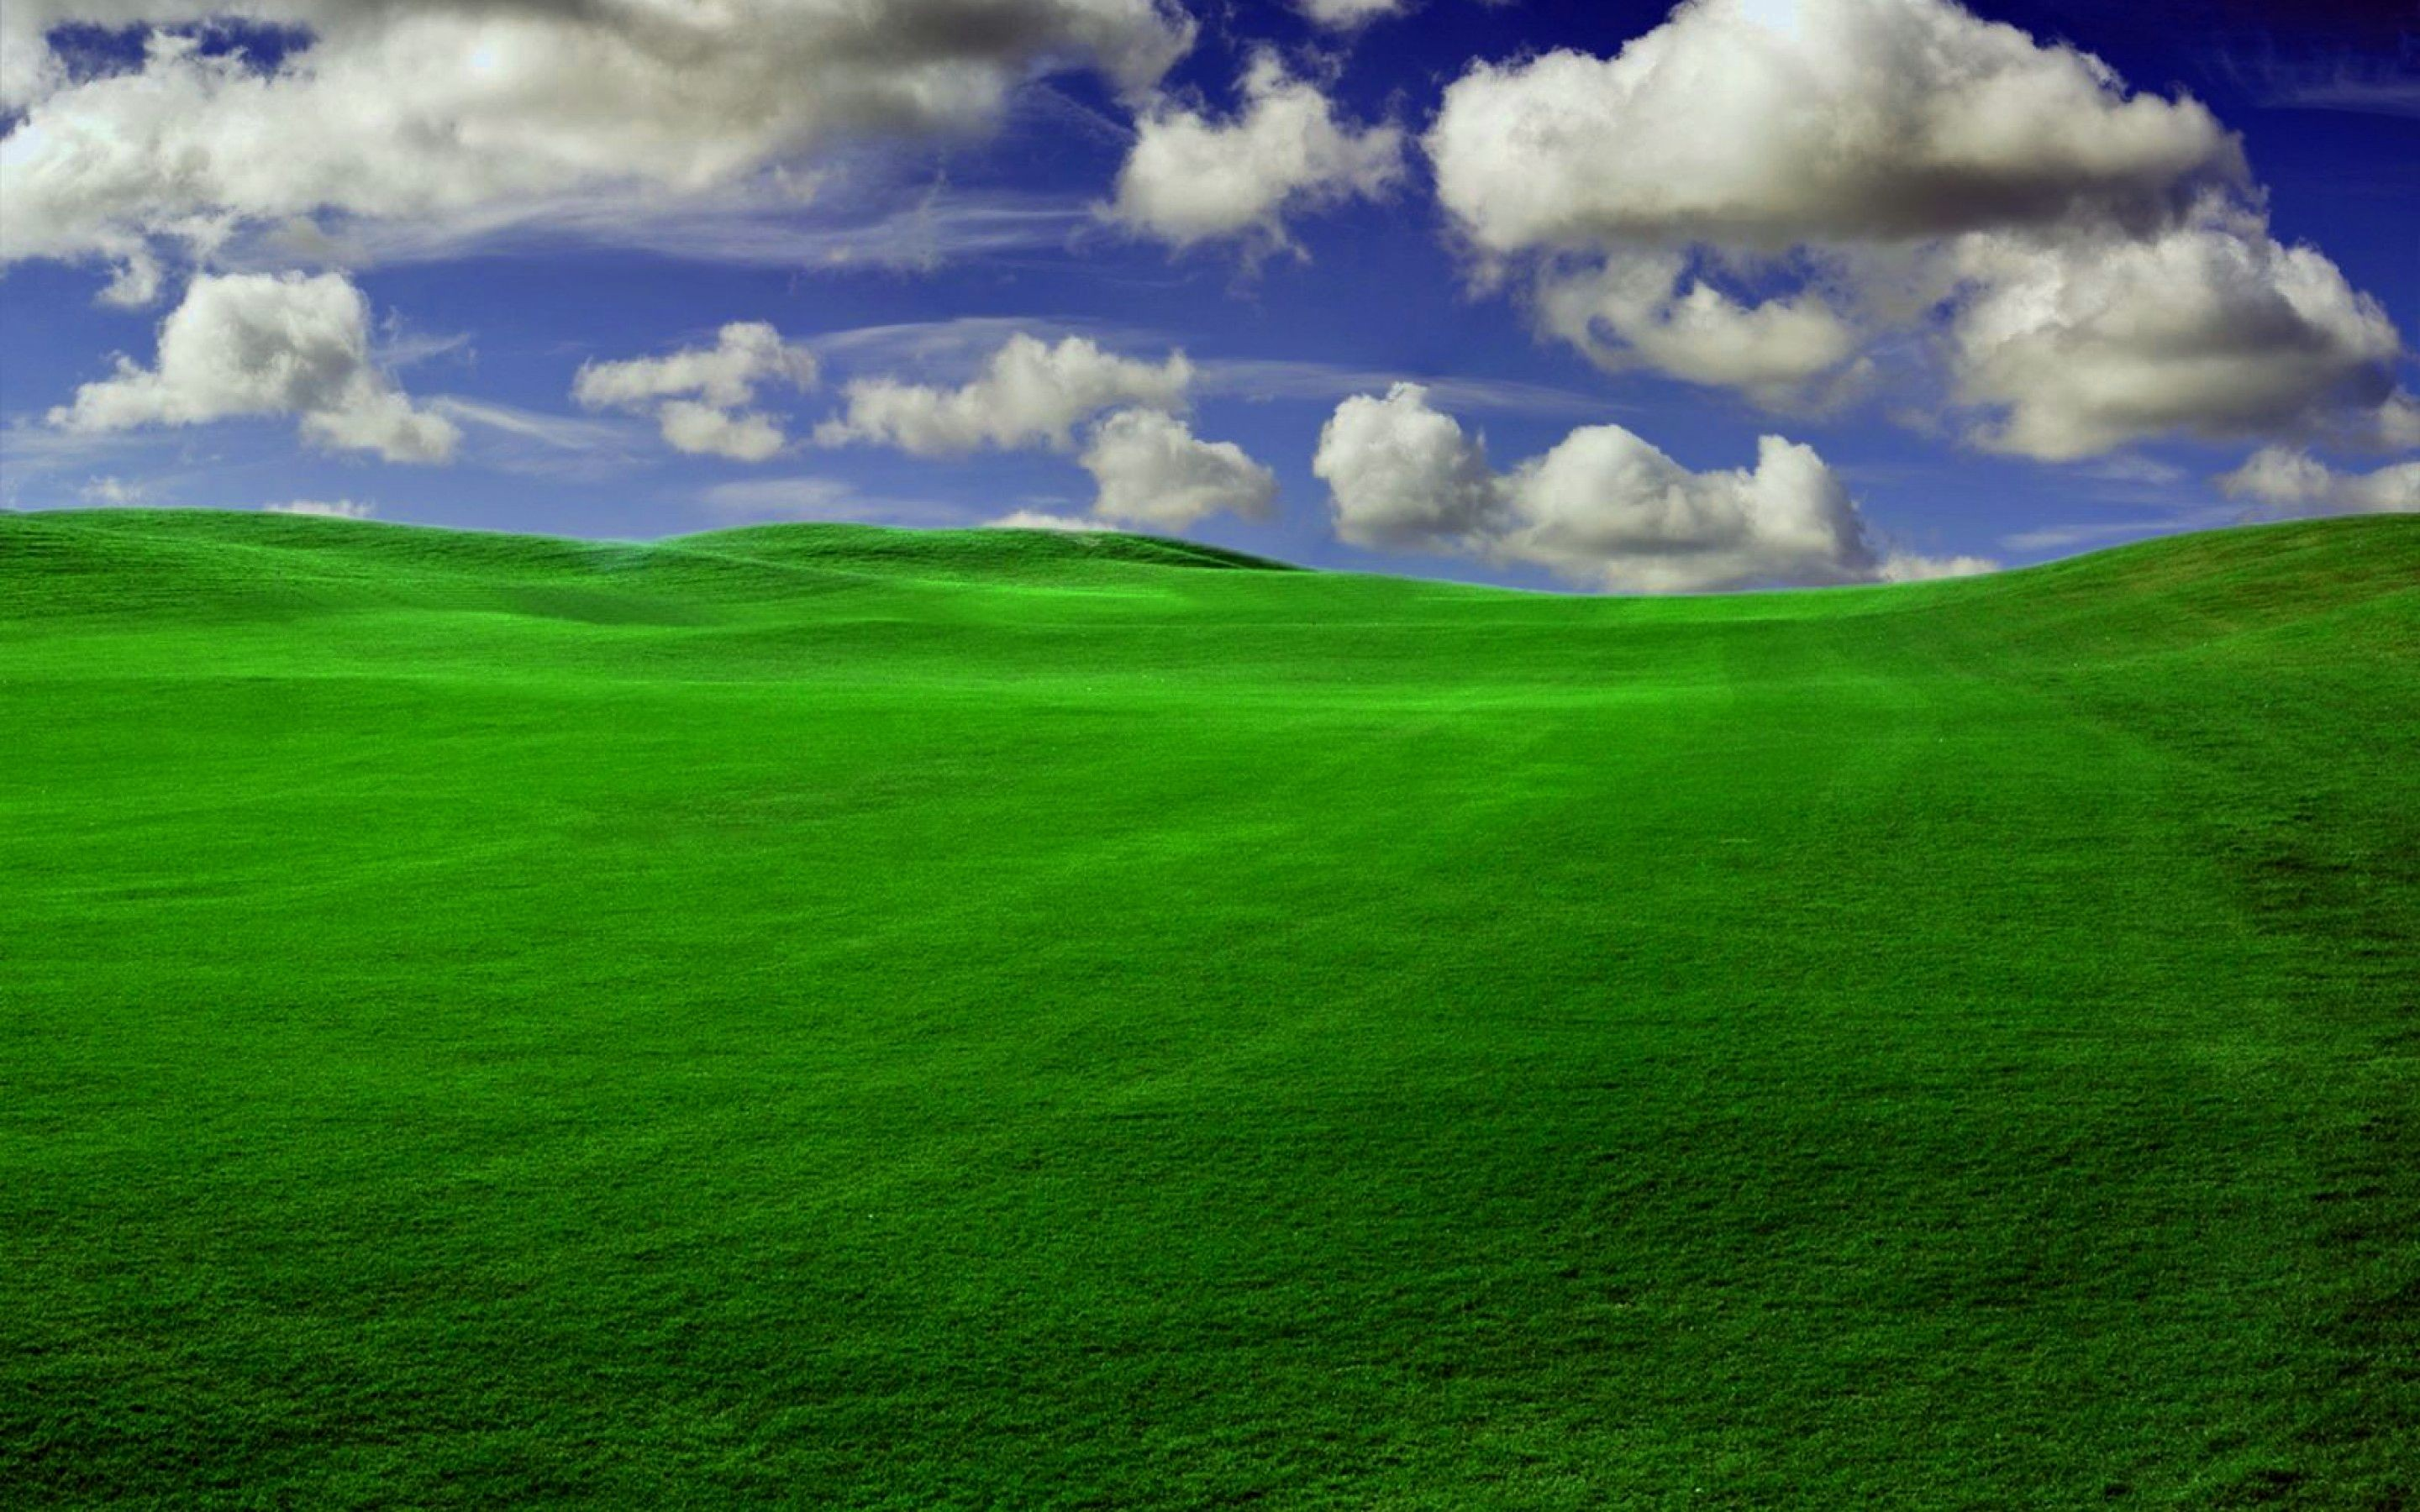 Windows Xp Background 1920x1080: Windows XP Wallpaper ·① Download Free Amazing Backgrounds